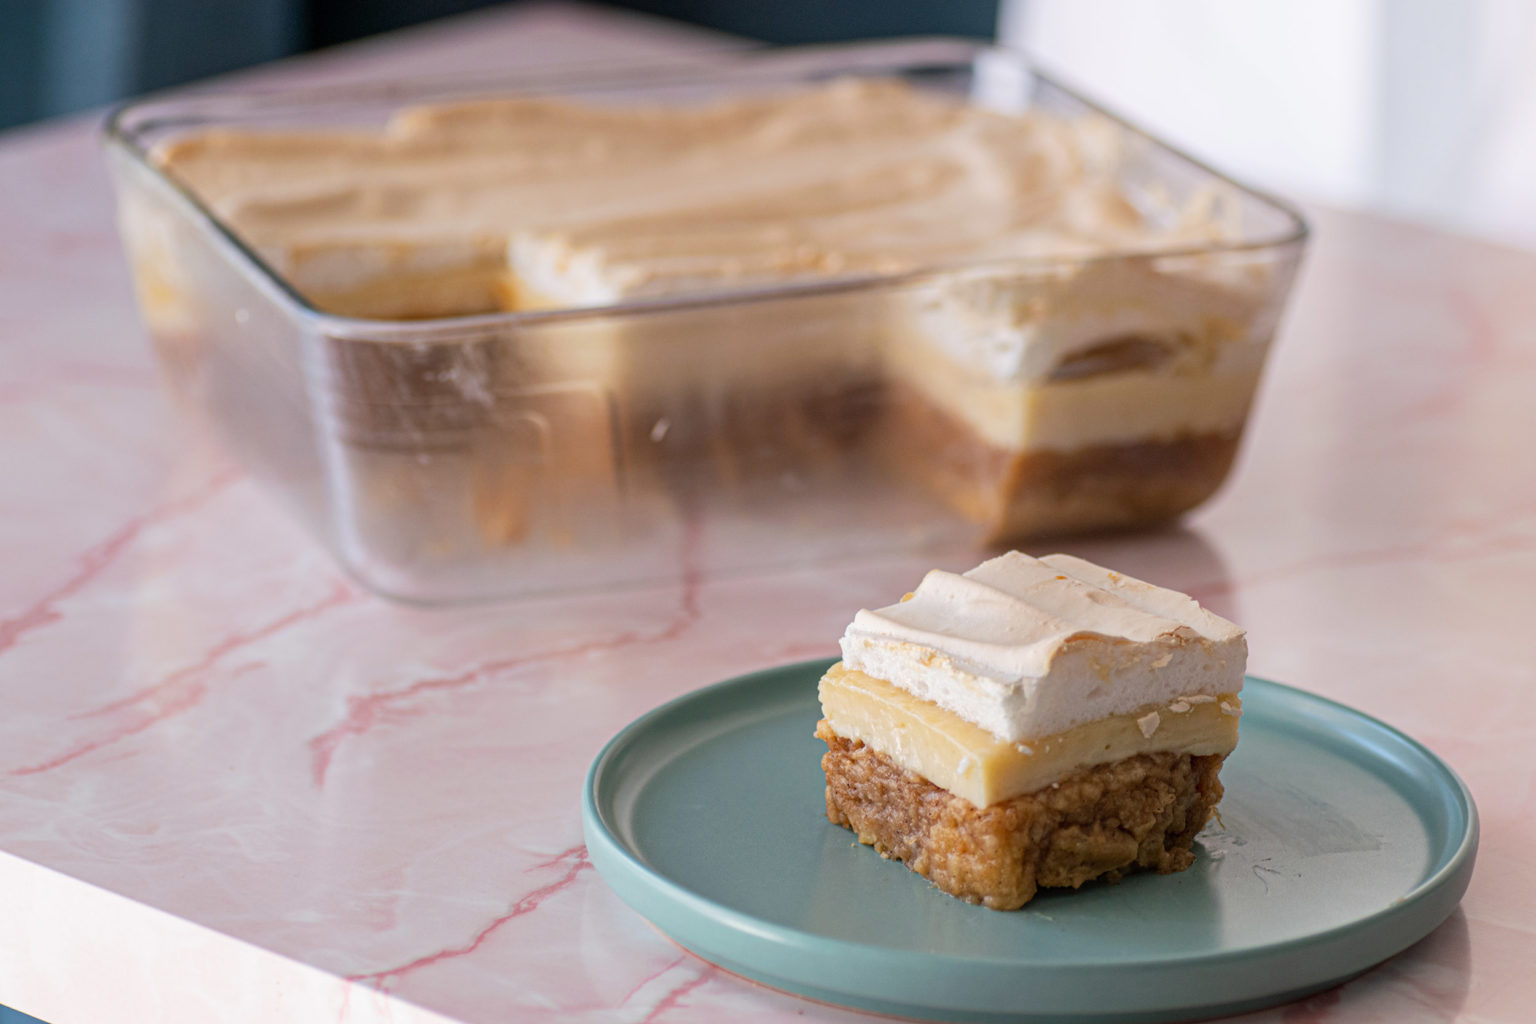 Slice of apple meringue cake with tray of cake in background